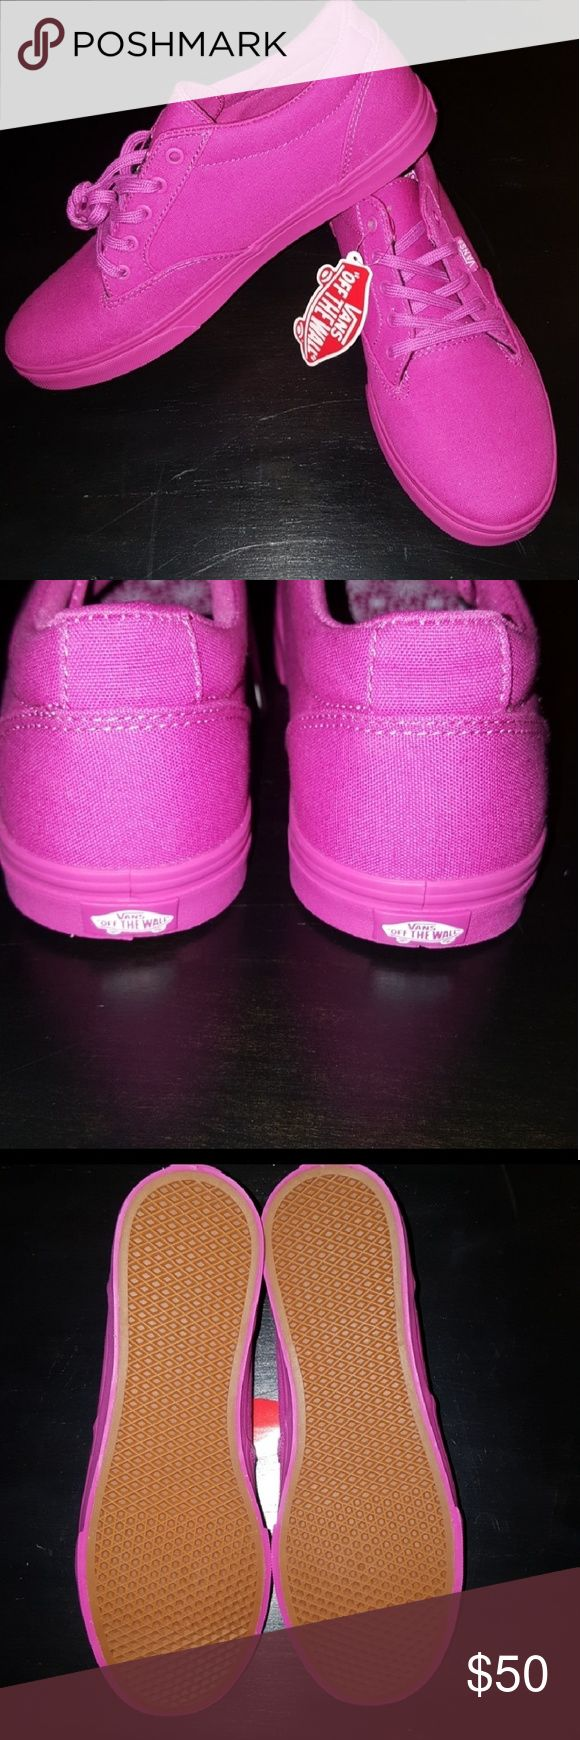 NEW Mono Winston low all pink Vans Very Berry NWOB Mono pink VANS Winston low all pink Vans Very Berry  Size 7.5 and 6.5 available Vans Shoes